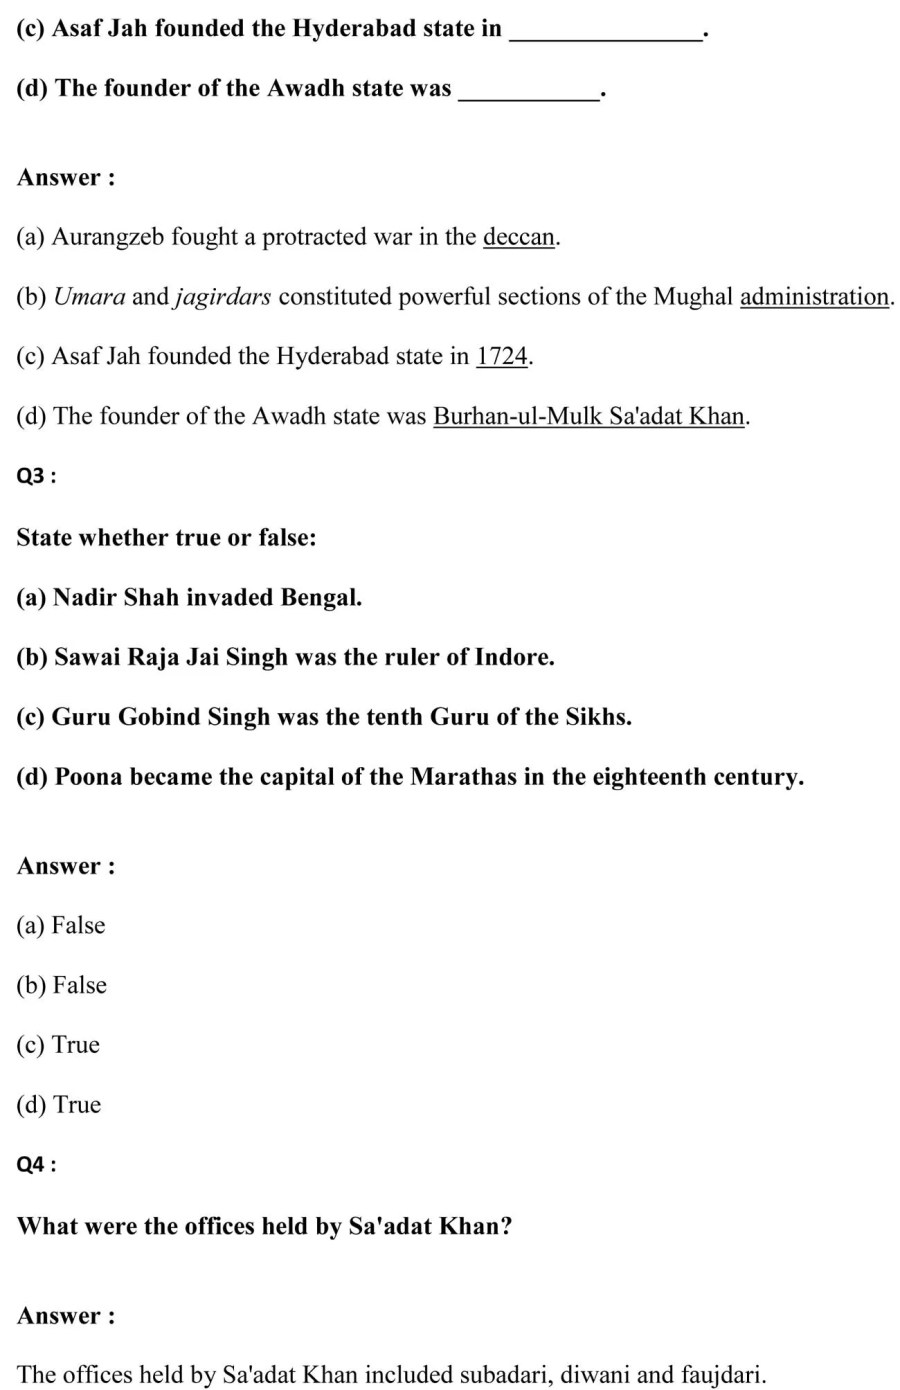 ncert solutions for class 7 history social science chapter 10 eighteenth century political formations 2